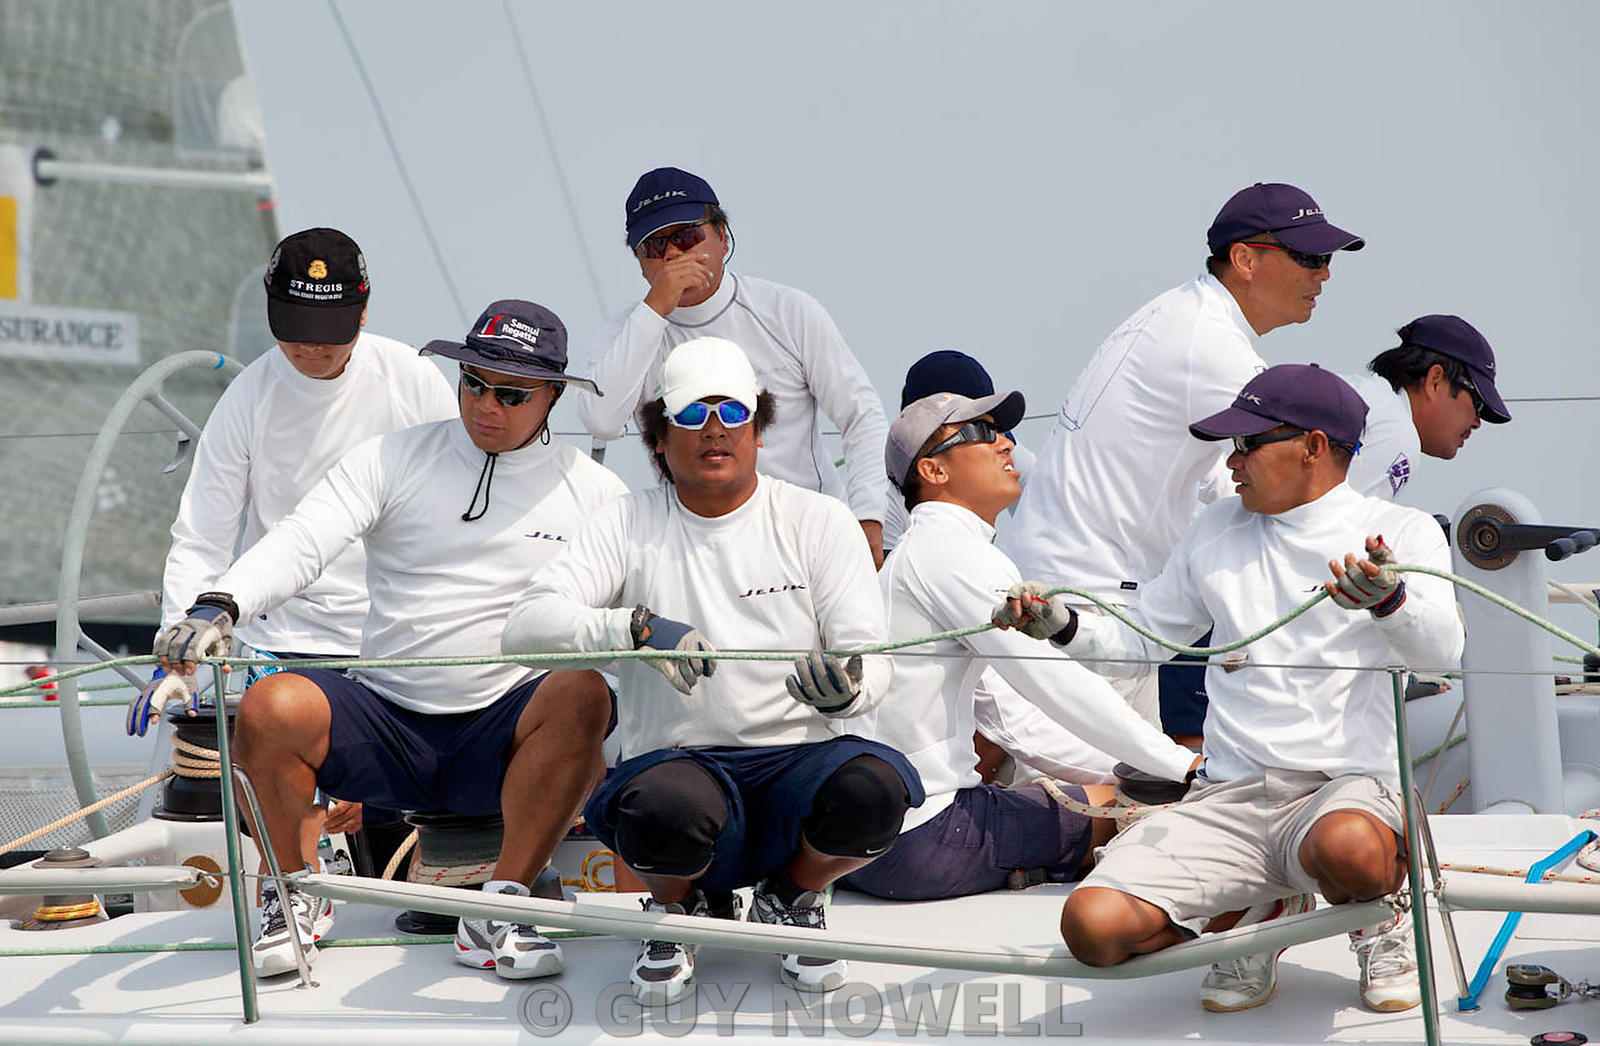 CHINA COAST REGATTA 2012